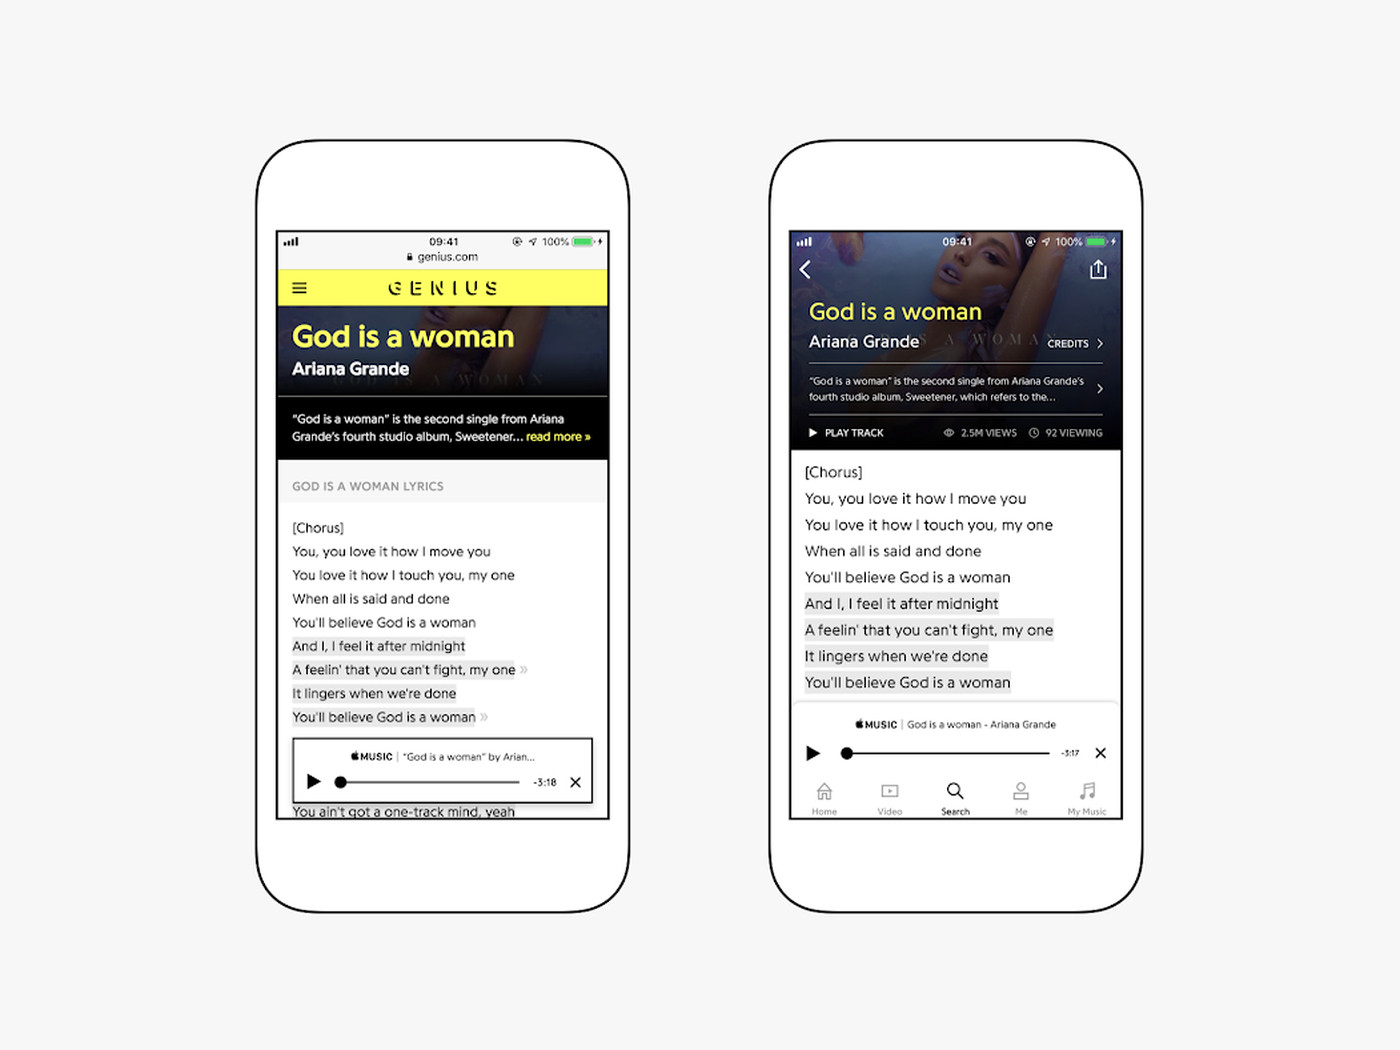 Genius lyrics are now available in Apple Music - The Verge